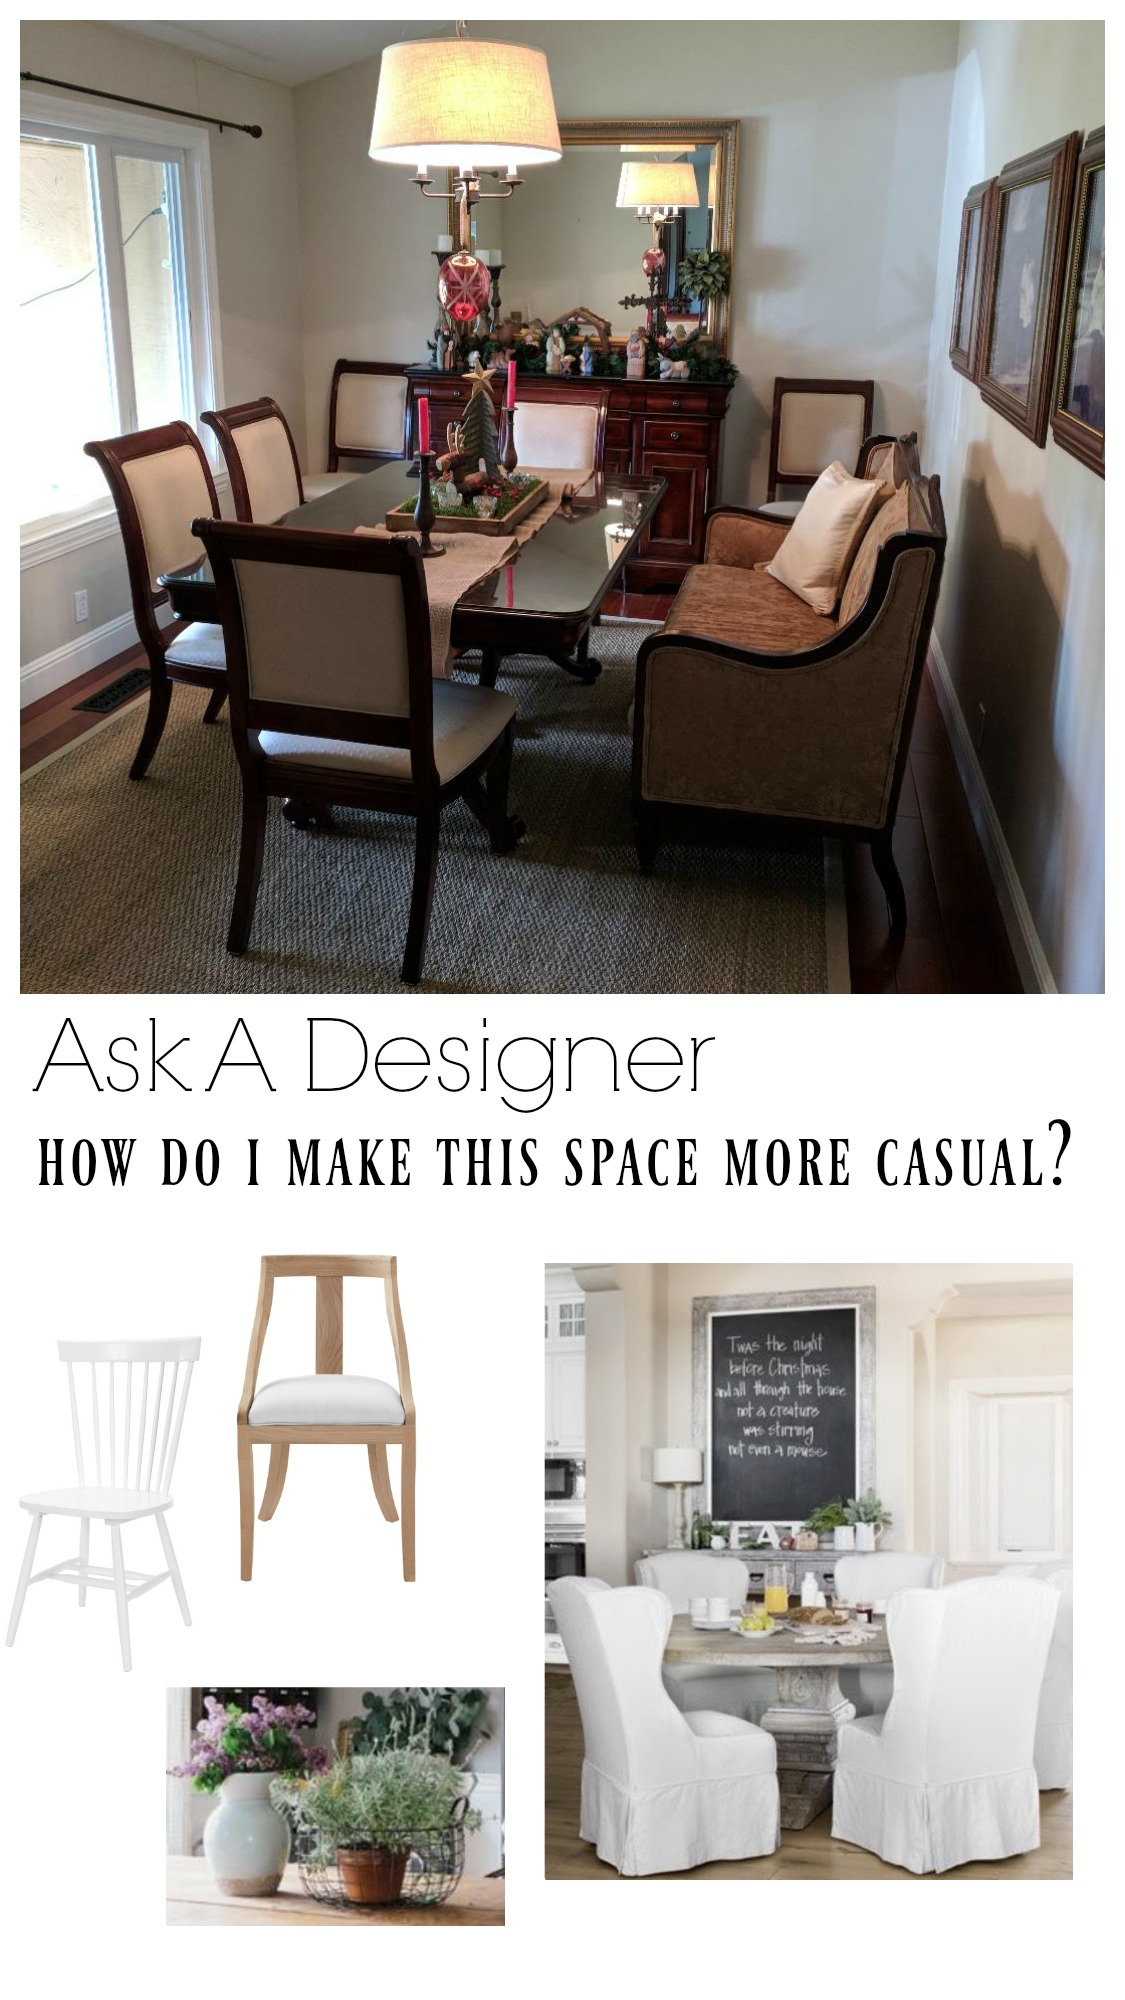 Ask a Designer Series- How to Lighten up a Dining Room